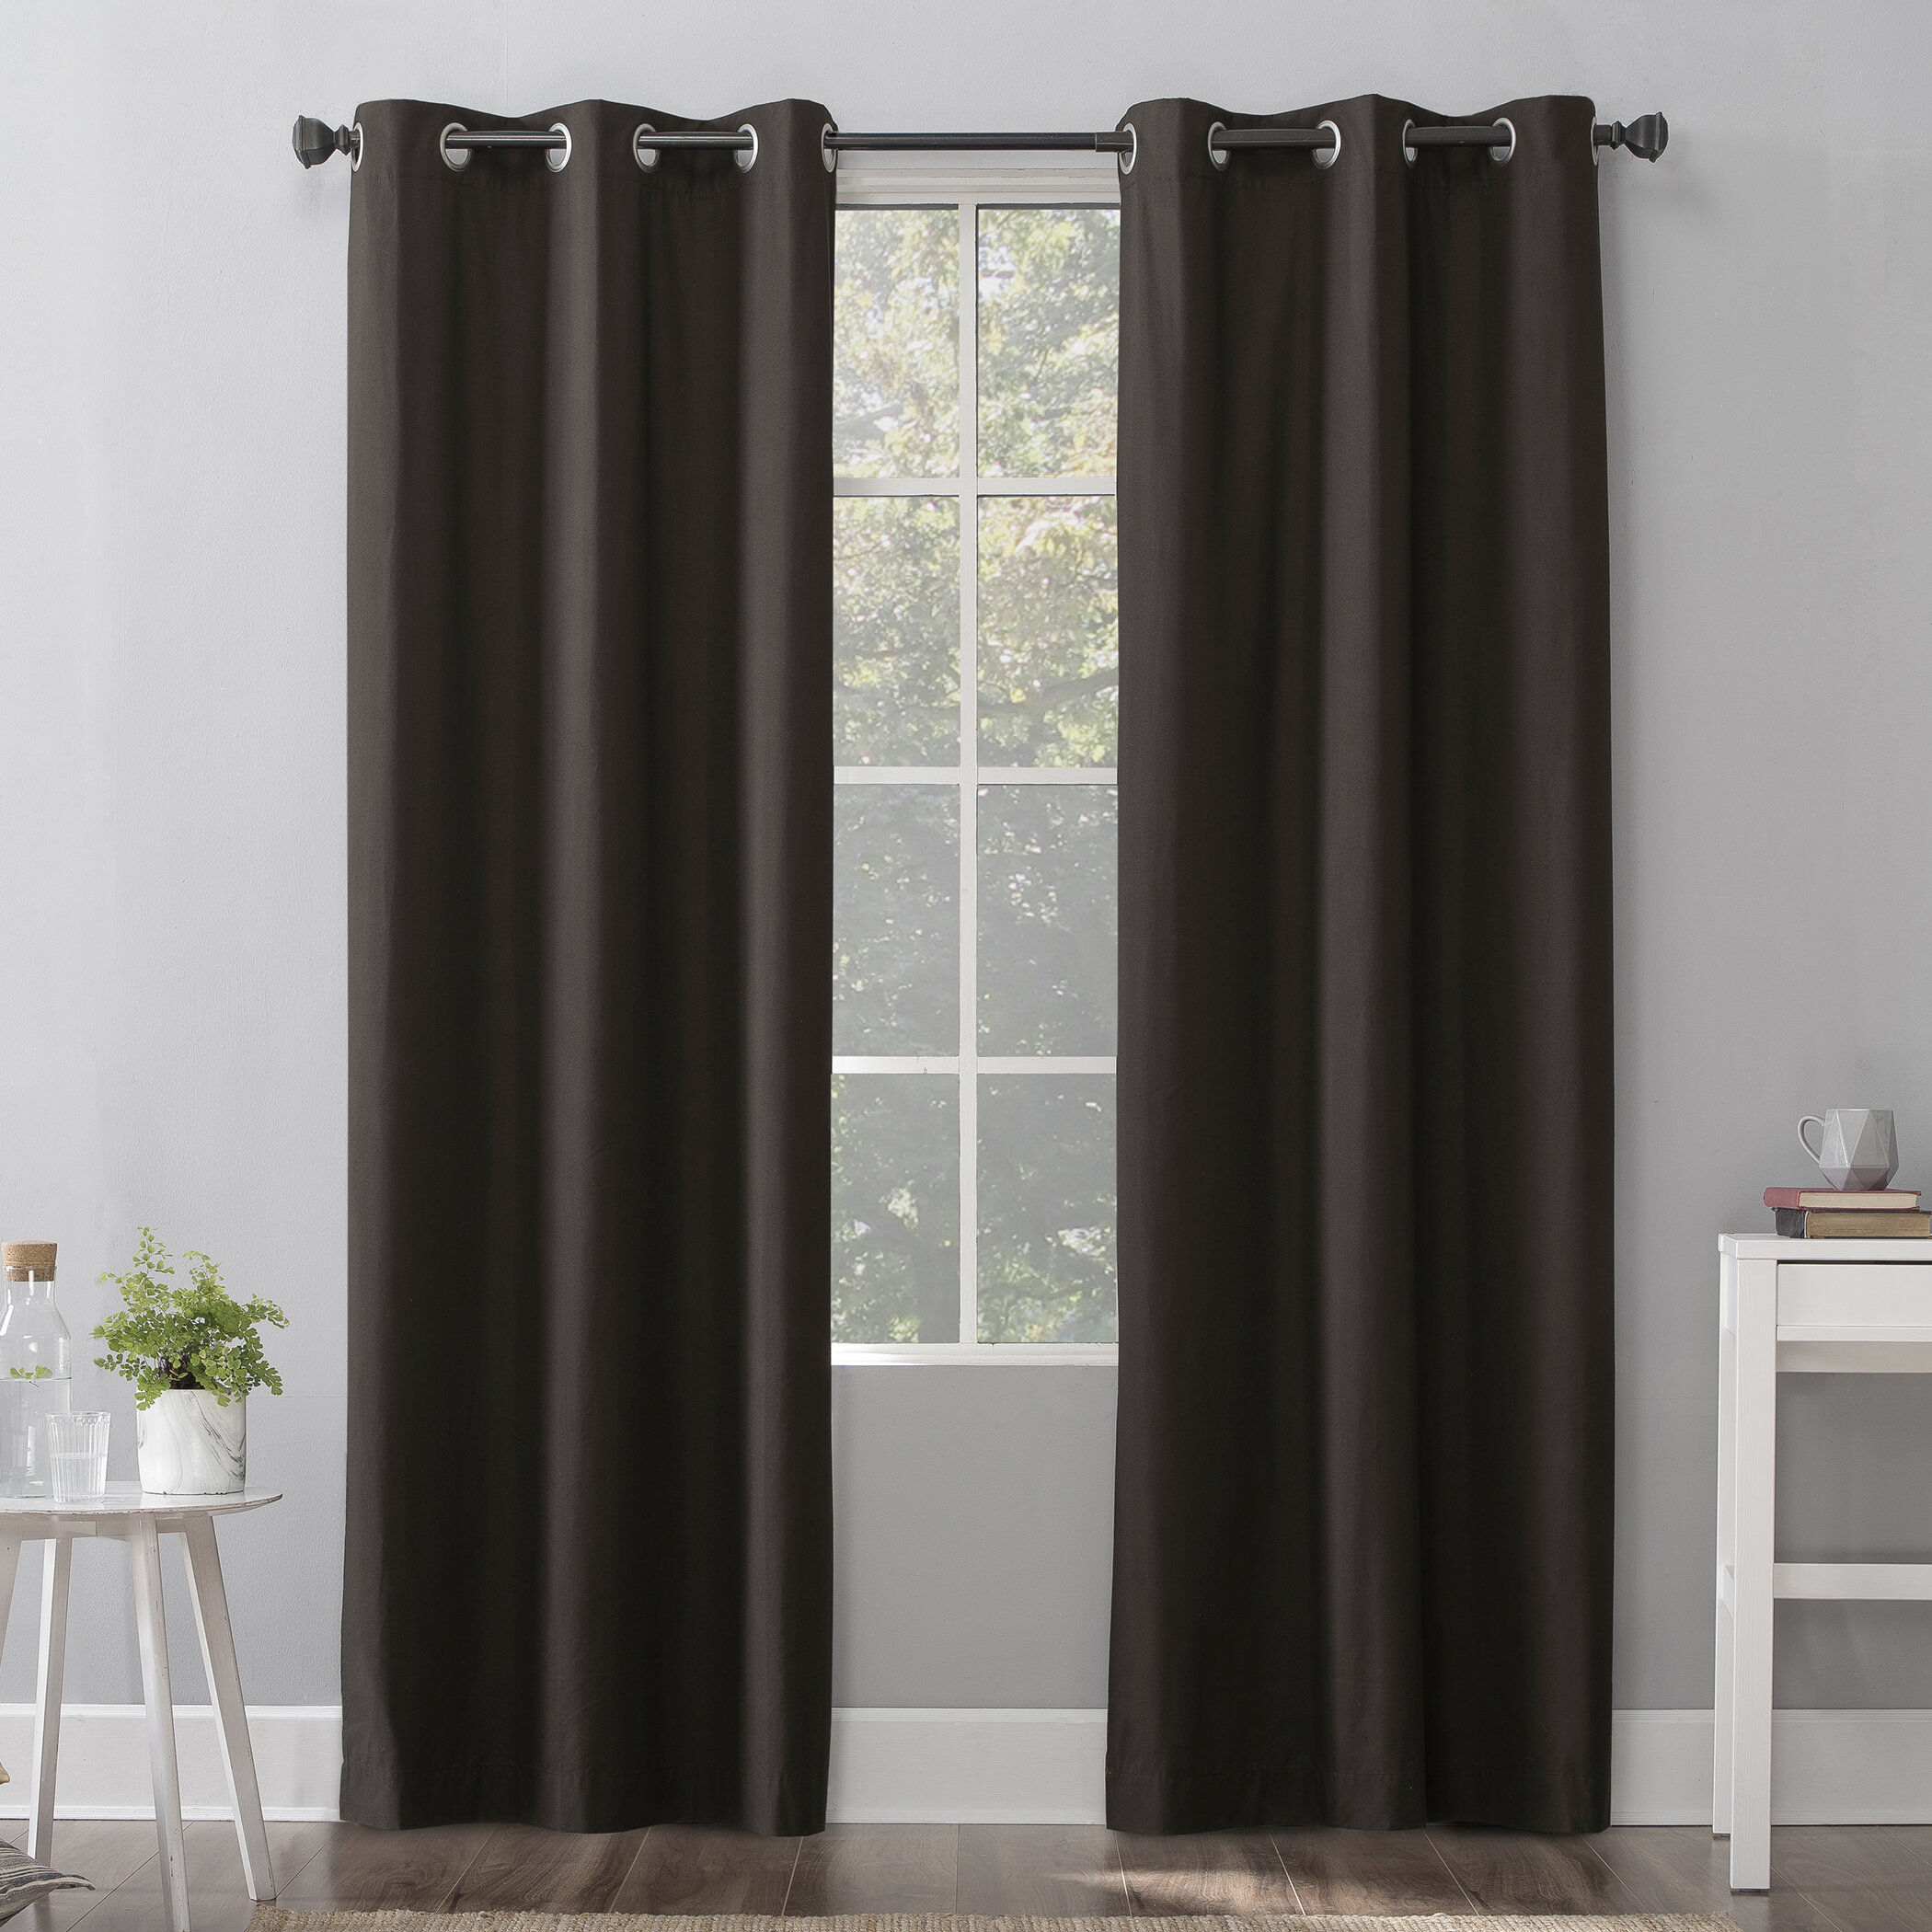 Wayfair basics Solid Max Blackout Thermal Grommet Curtains